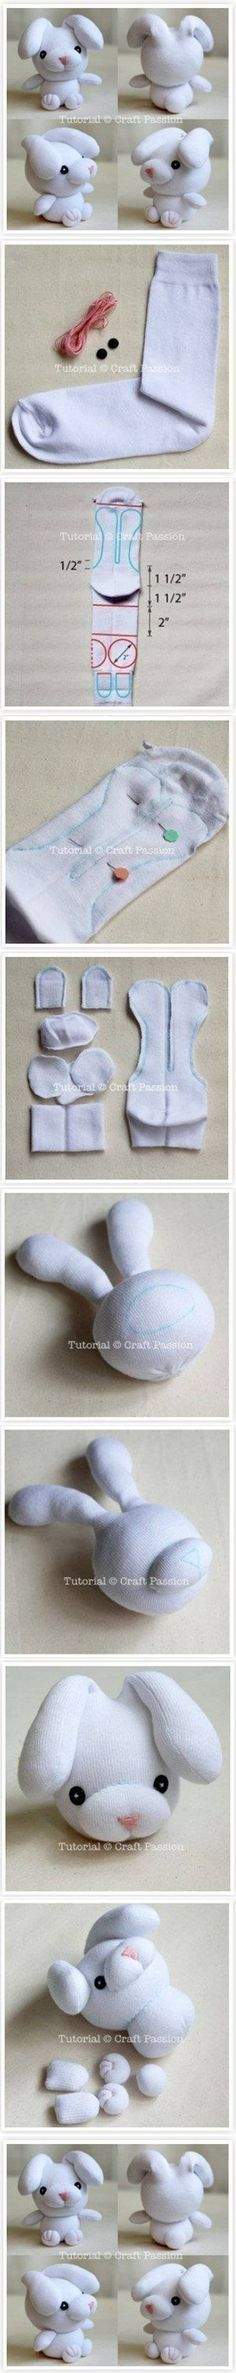 DIY Sew Sock Bunny DIY Projects